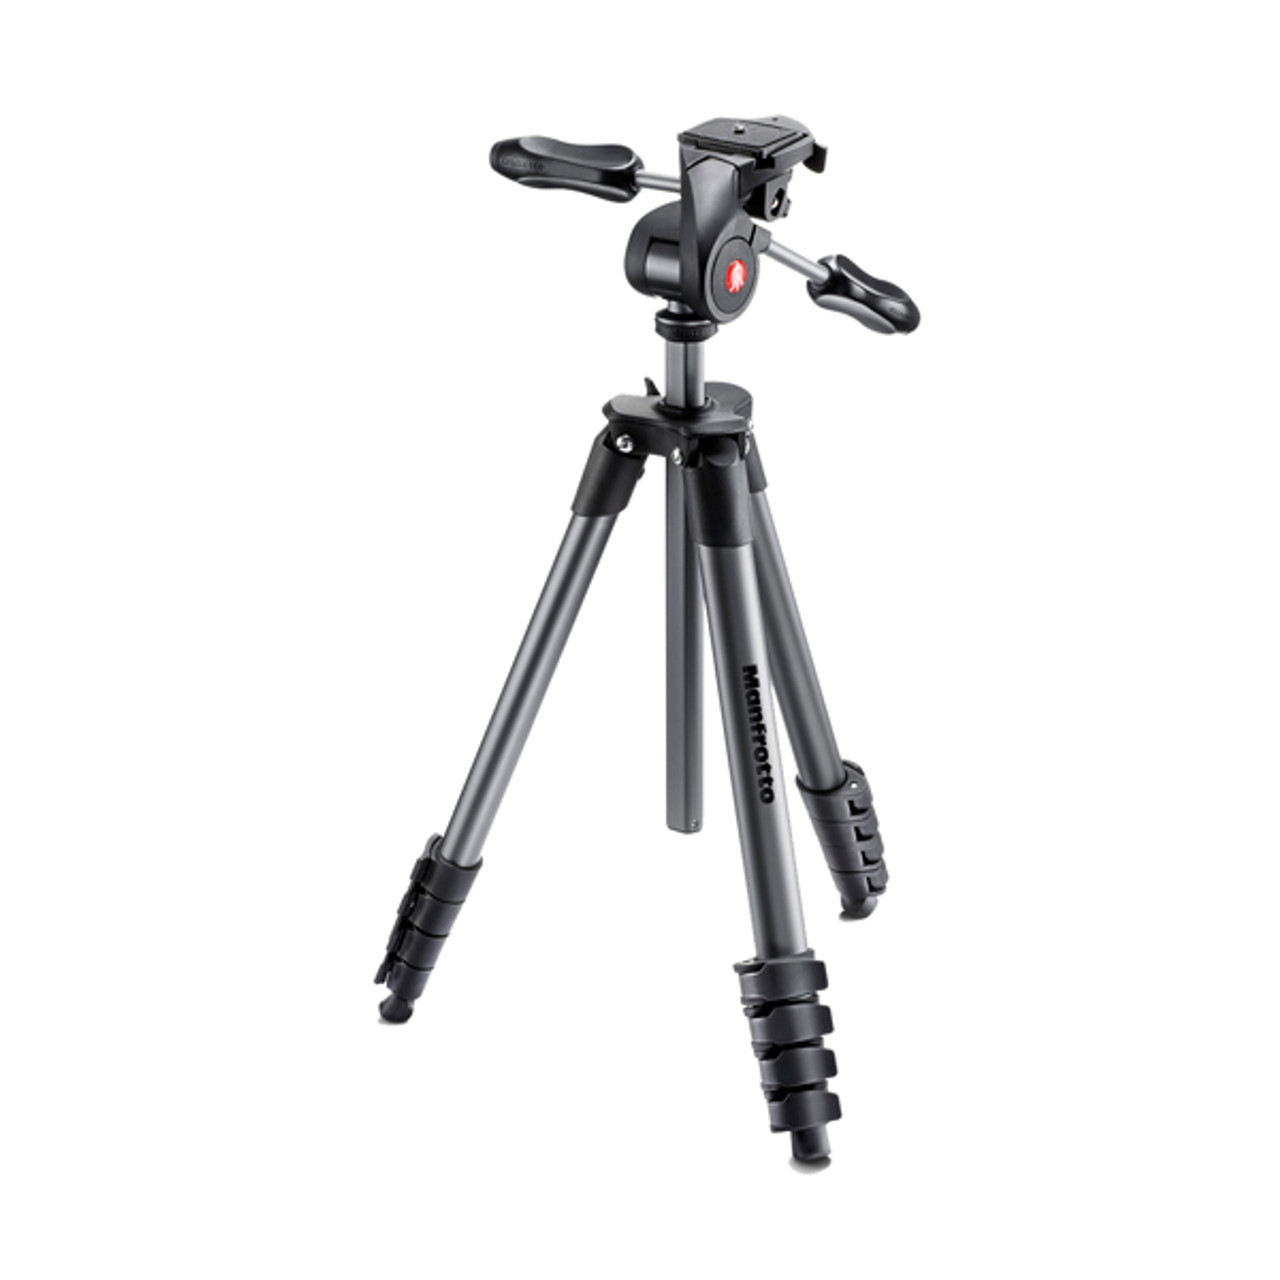 Manfrotto Compact Advanced Tripod with Head Kit